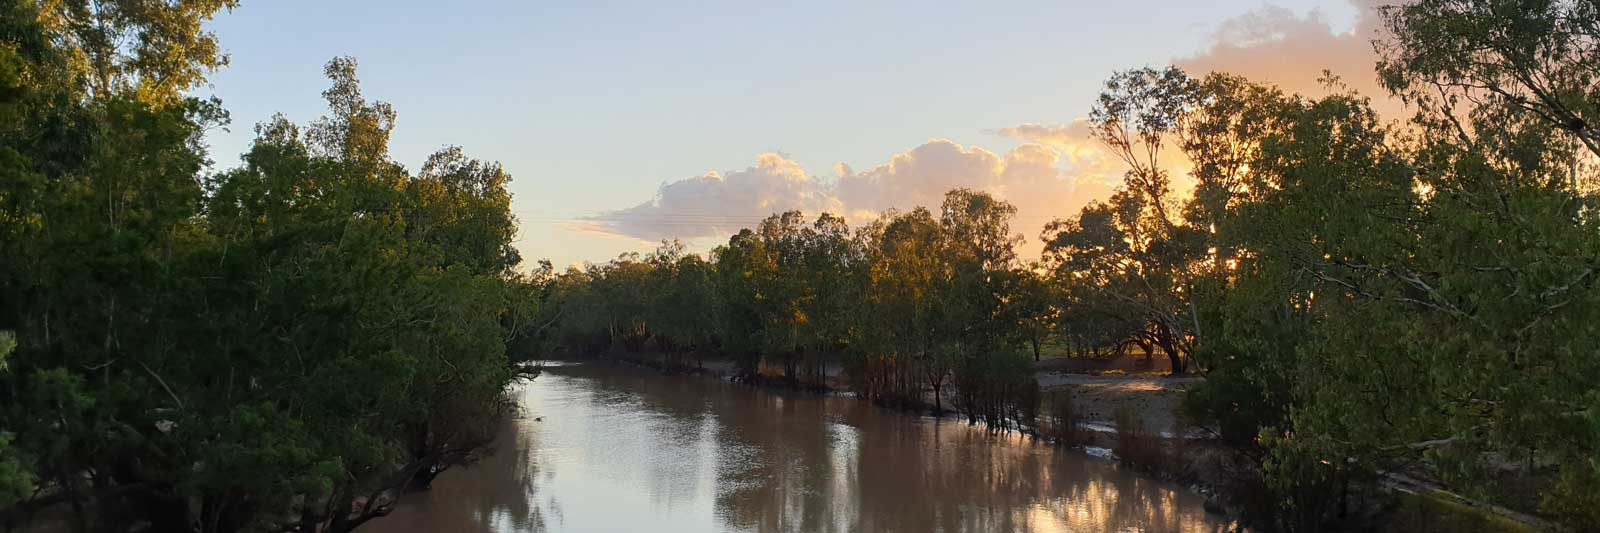 Sunrise at Balonne River